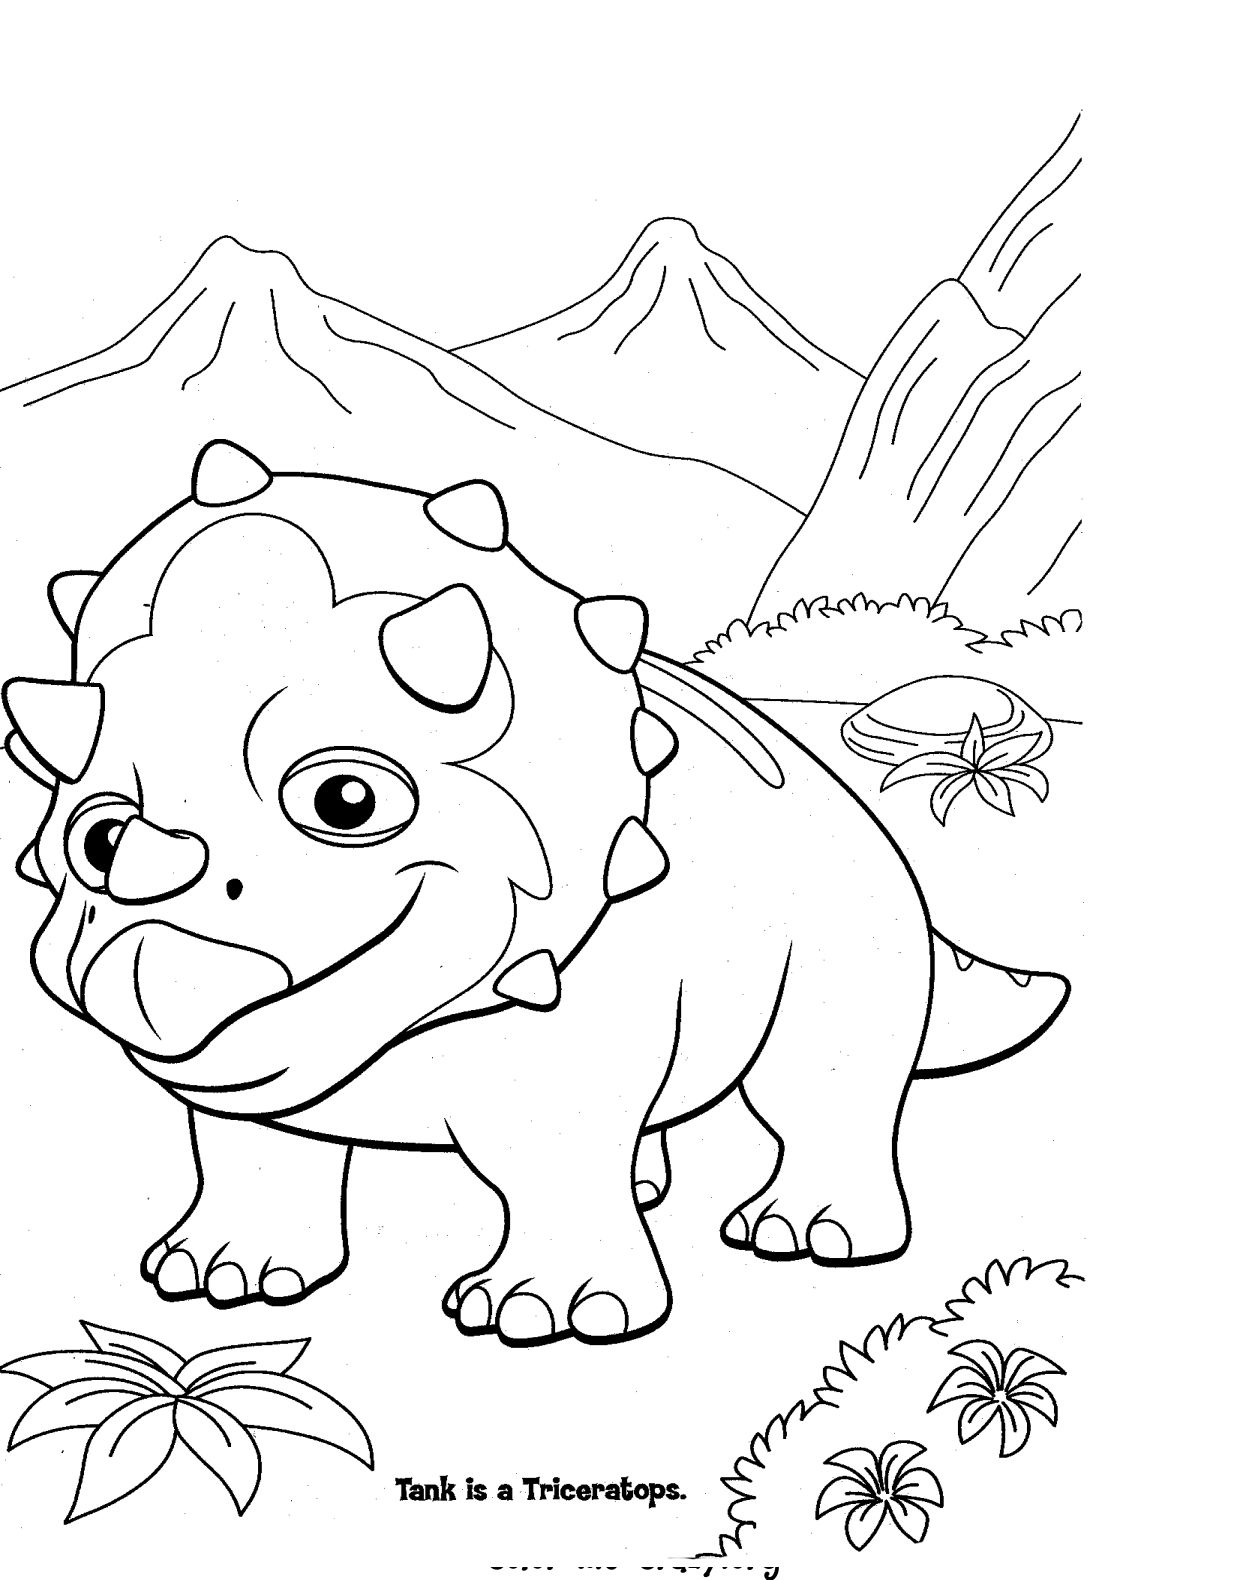 dinosaur colouring pictures to print dinosaurs coloring pages printable minister coloring to print dinosaur colouring pictures